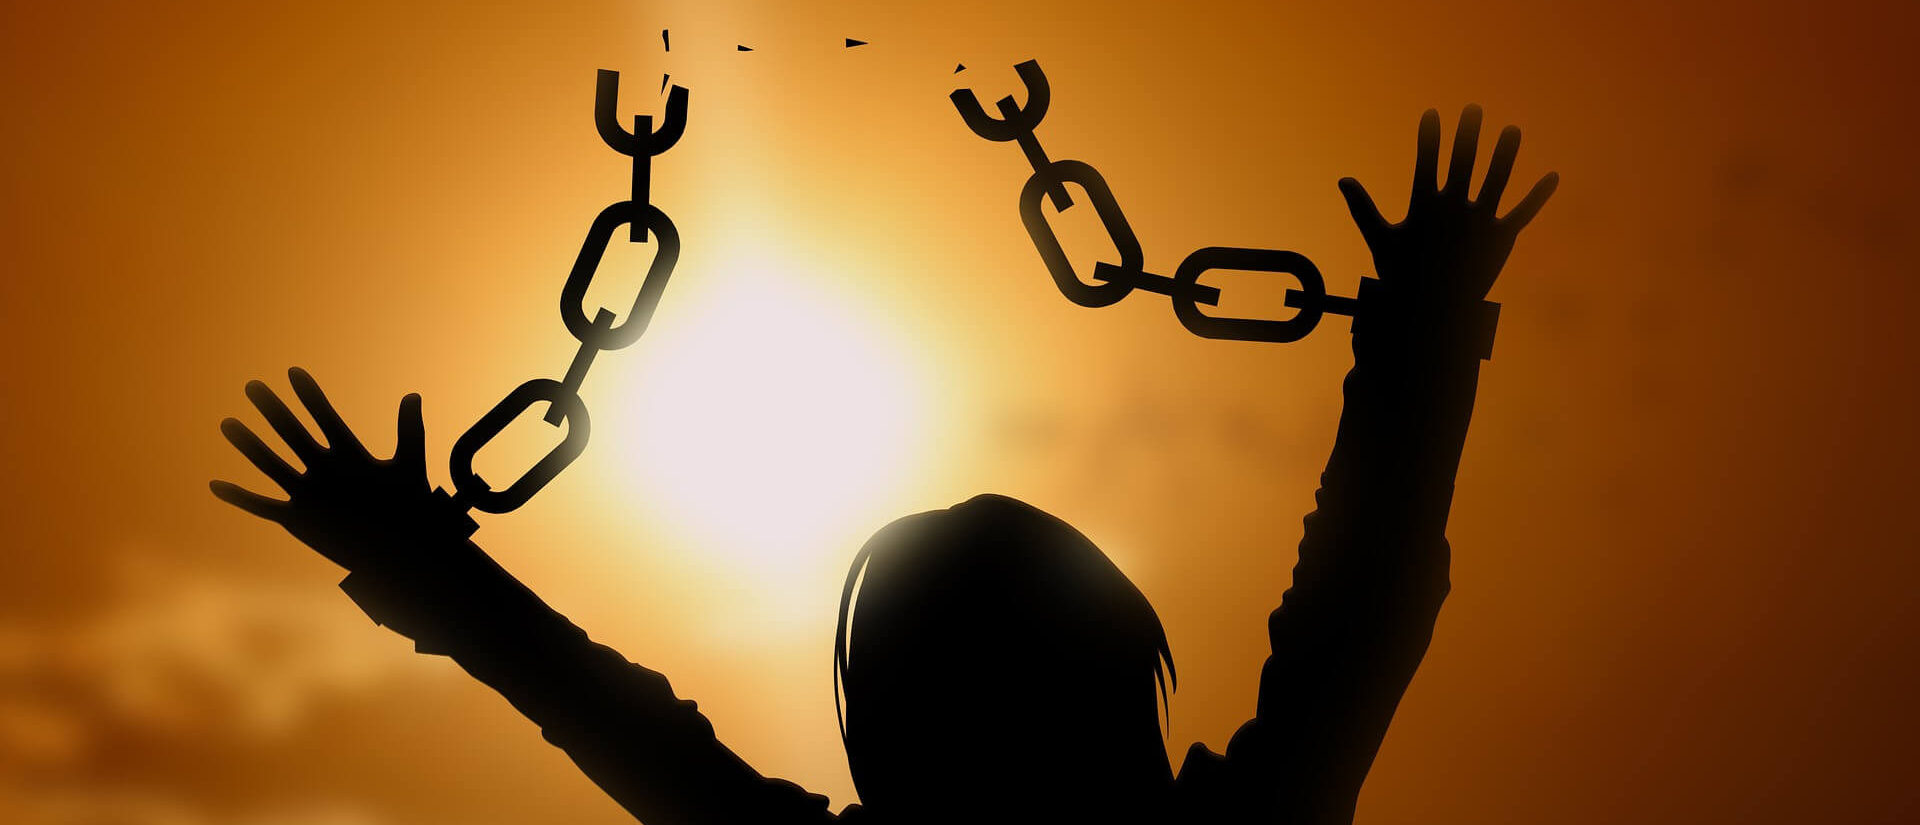 a woman breaking free from chains